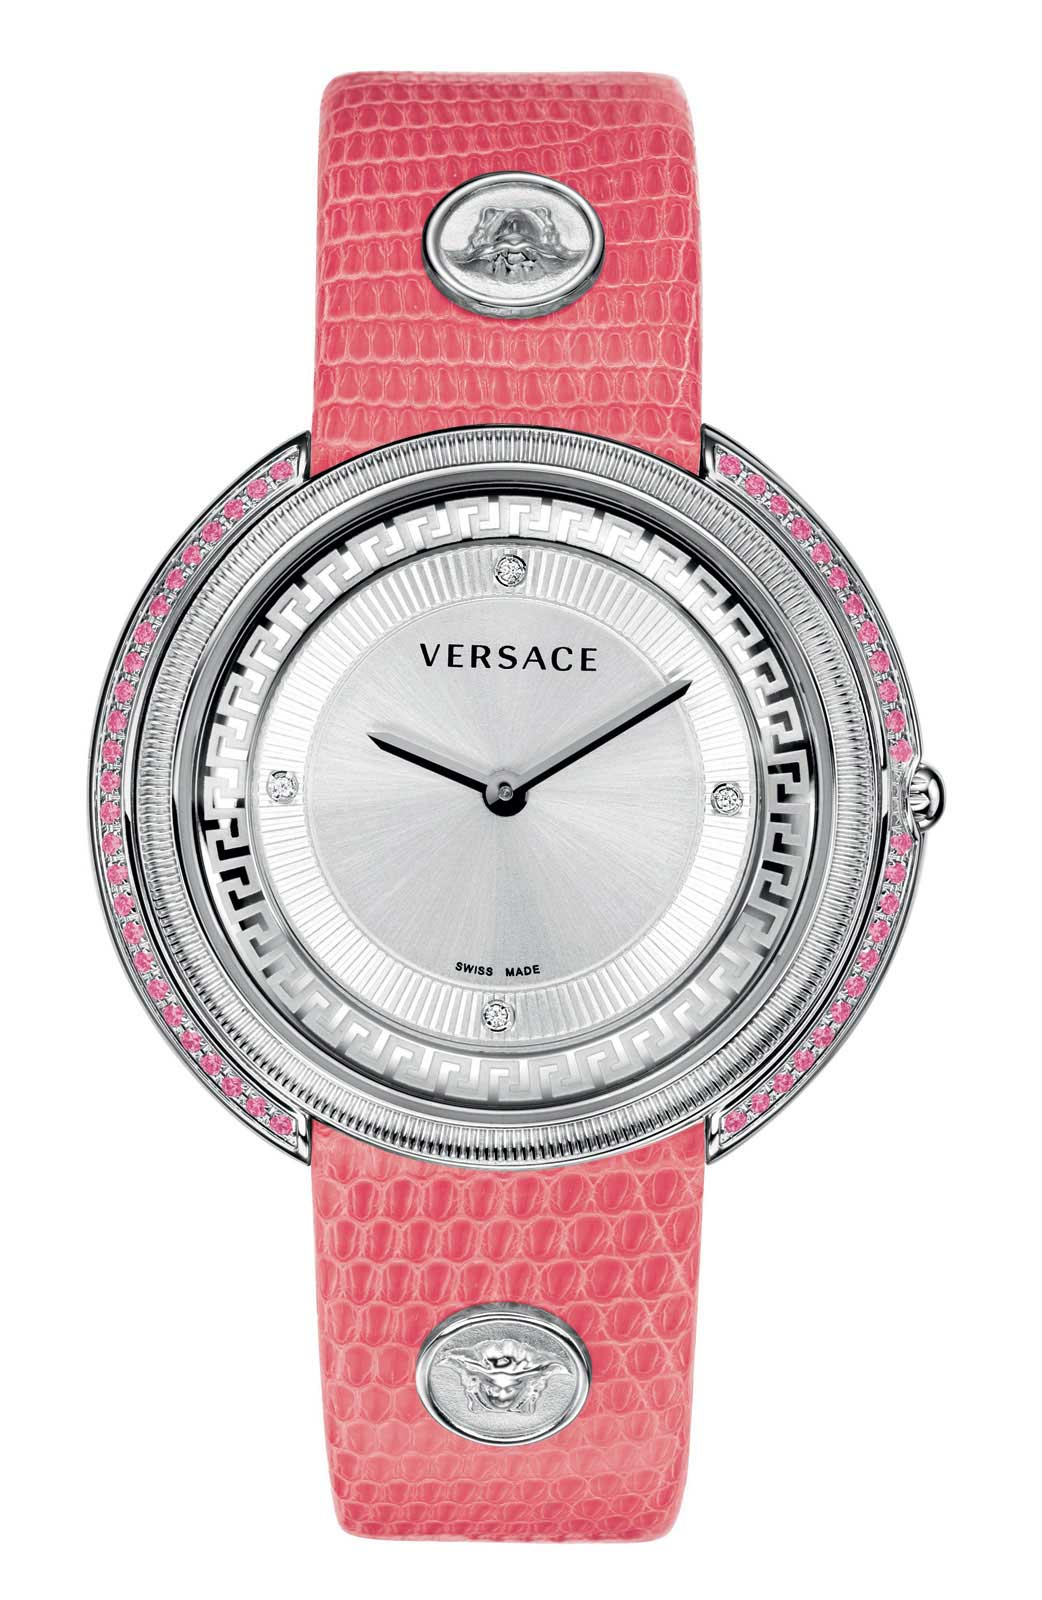 Versace women's watches8